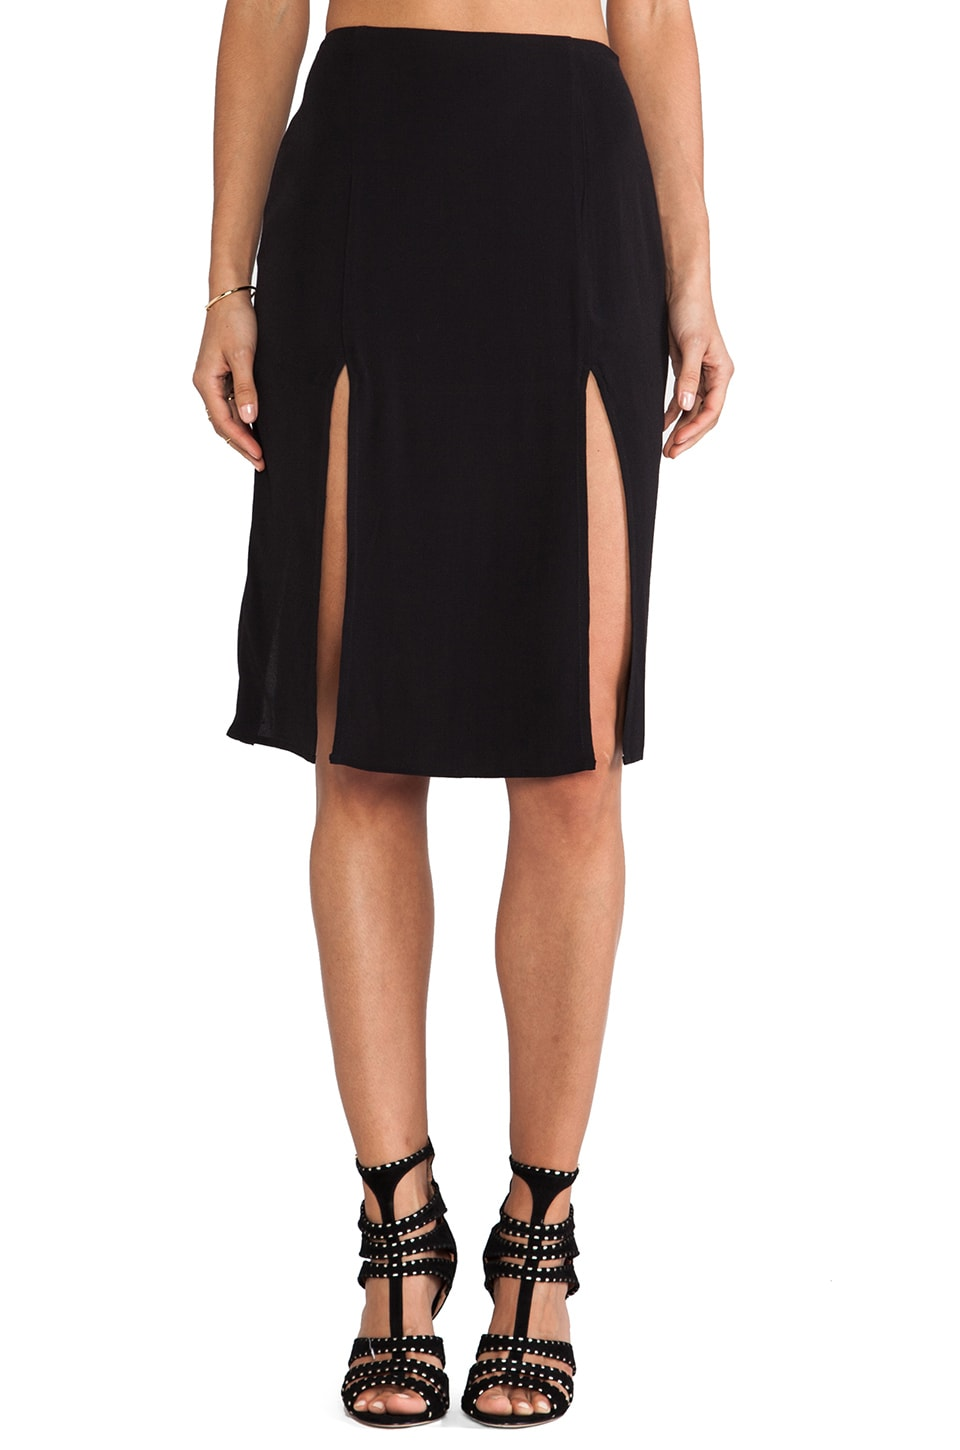 For Love & Lemons Pepe Skirt in Black